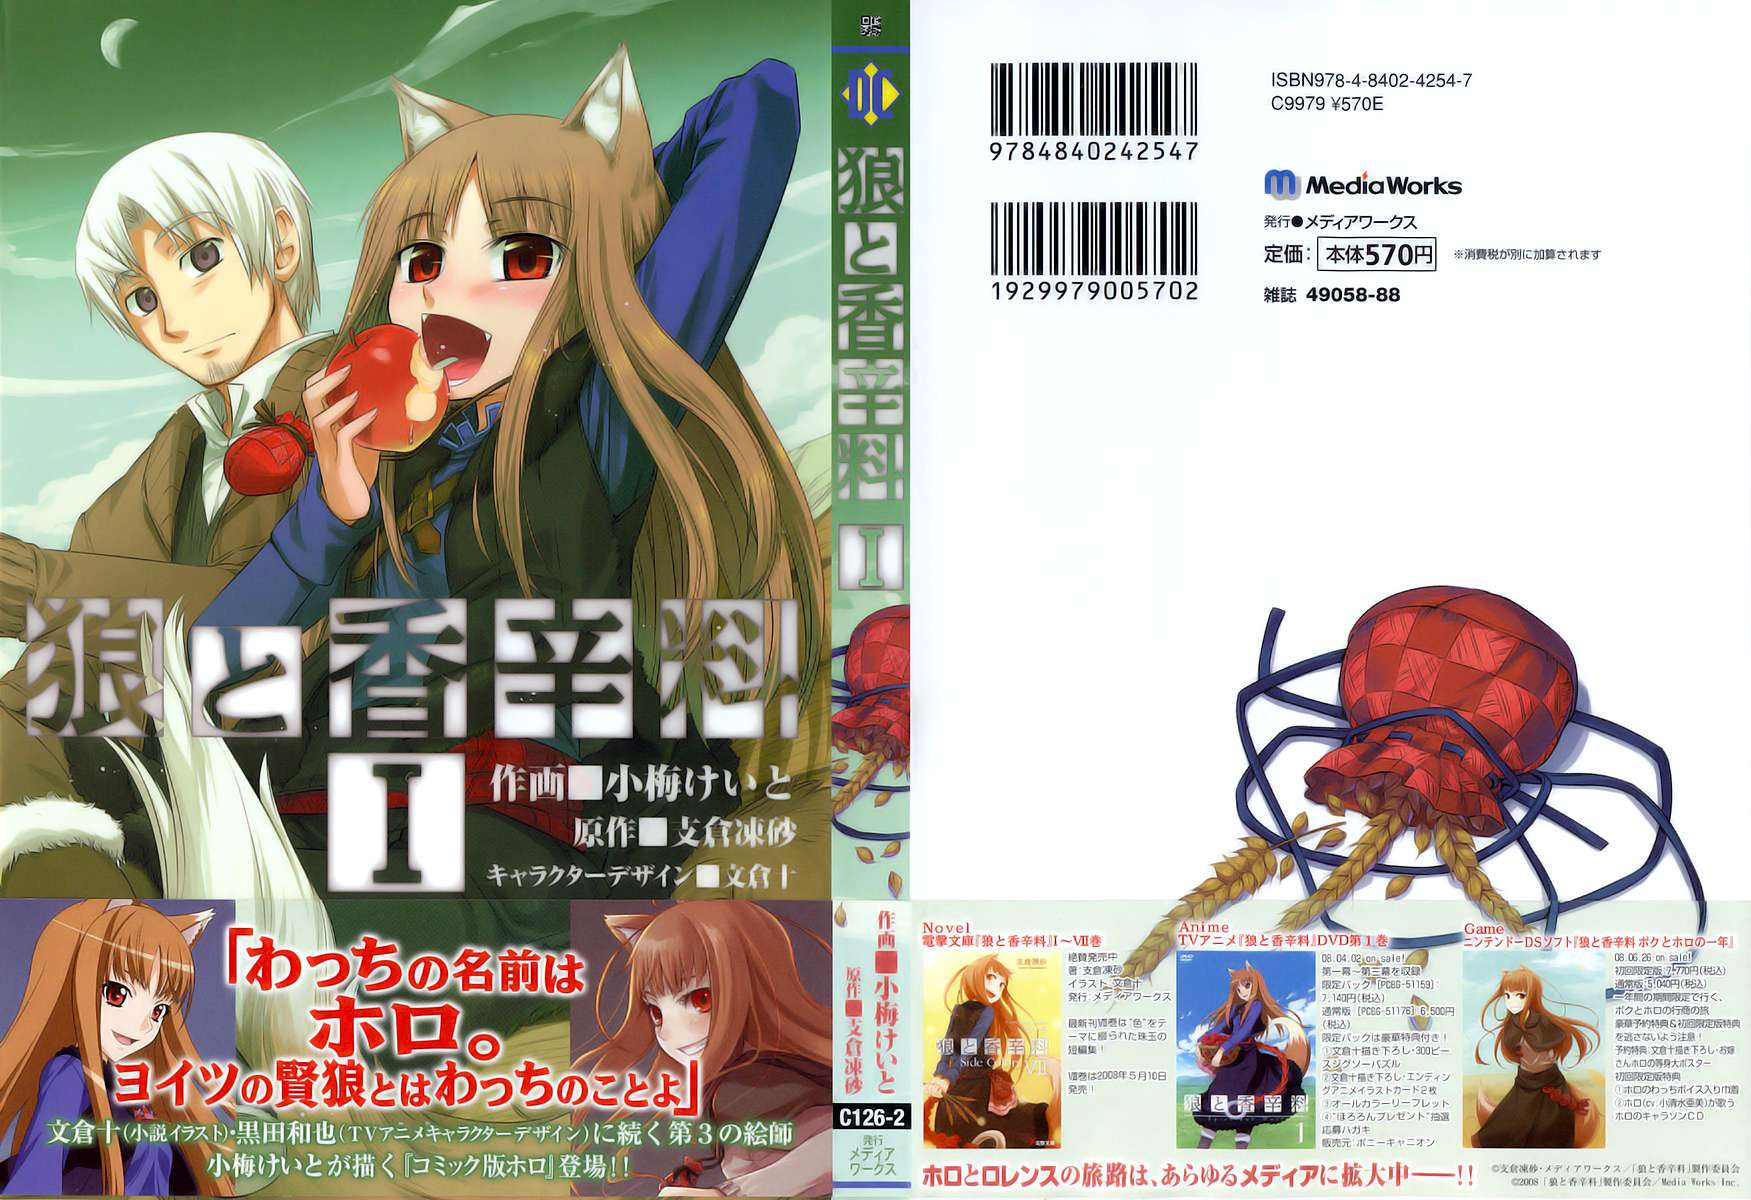 Ookami to Koushinryou (Wolf and Spice) - Ookami to Koushinryou (Wolf and Spice) Chapter 001 - Pic 3